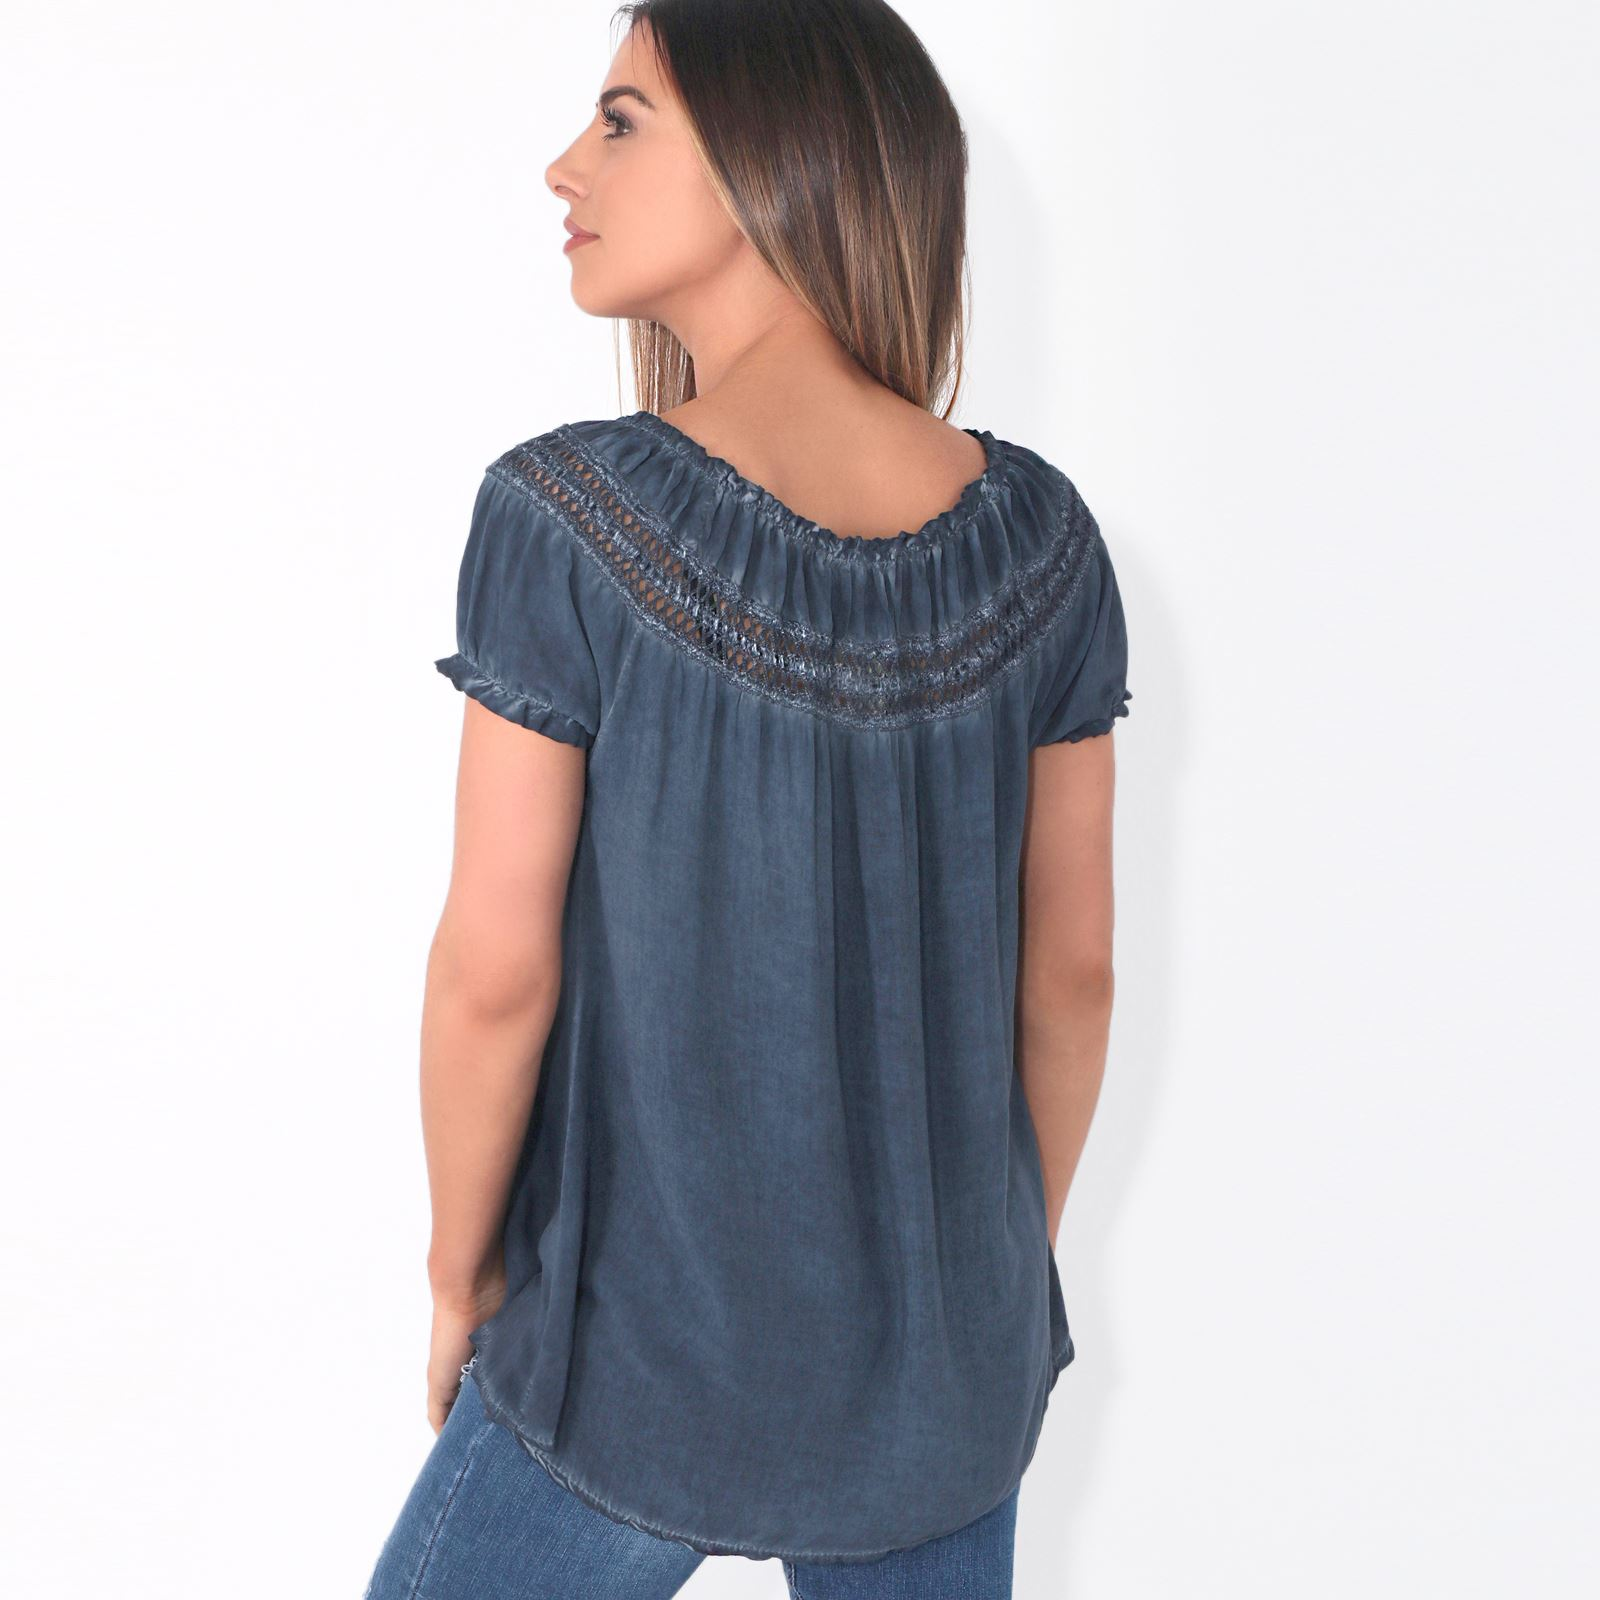 Womens-Off-Shoulder-Blouse-Gypsy-Boho-Cotton-T-Shirt-Top-Tunic-Summer-Loose-Fit thumbnail 11